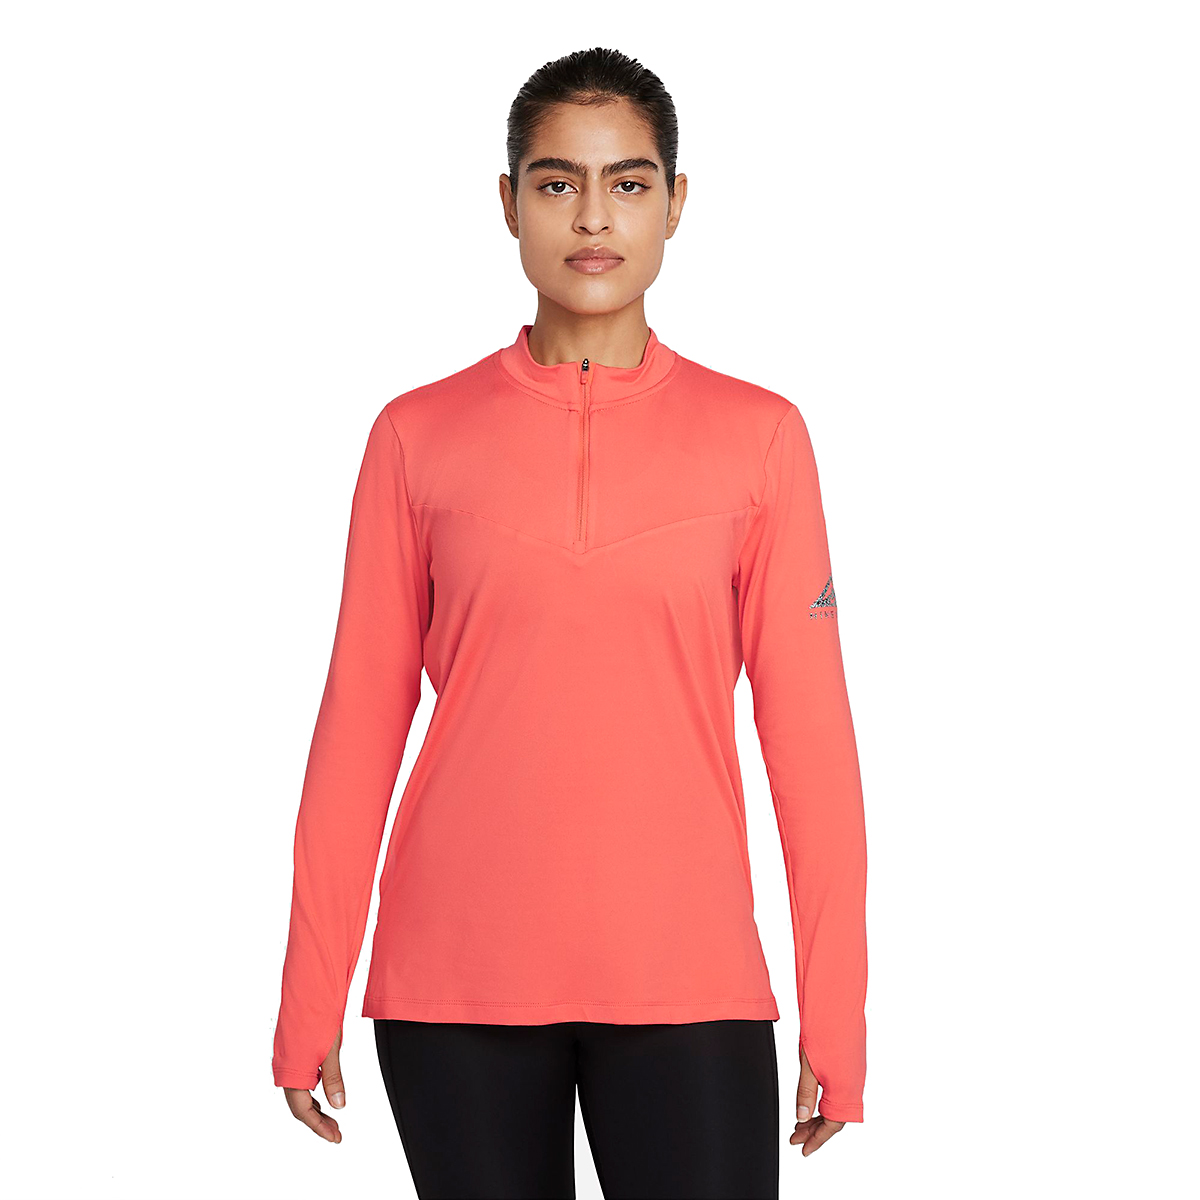 Women's Nike Element Trail Running Midlayer - Color: Magic Ember/Reflective Silver - Size: XS, Magic Ember/Reflective Silver, large, image 1